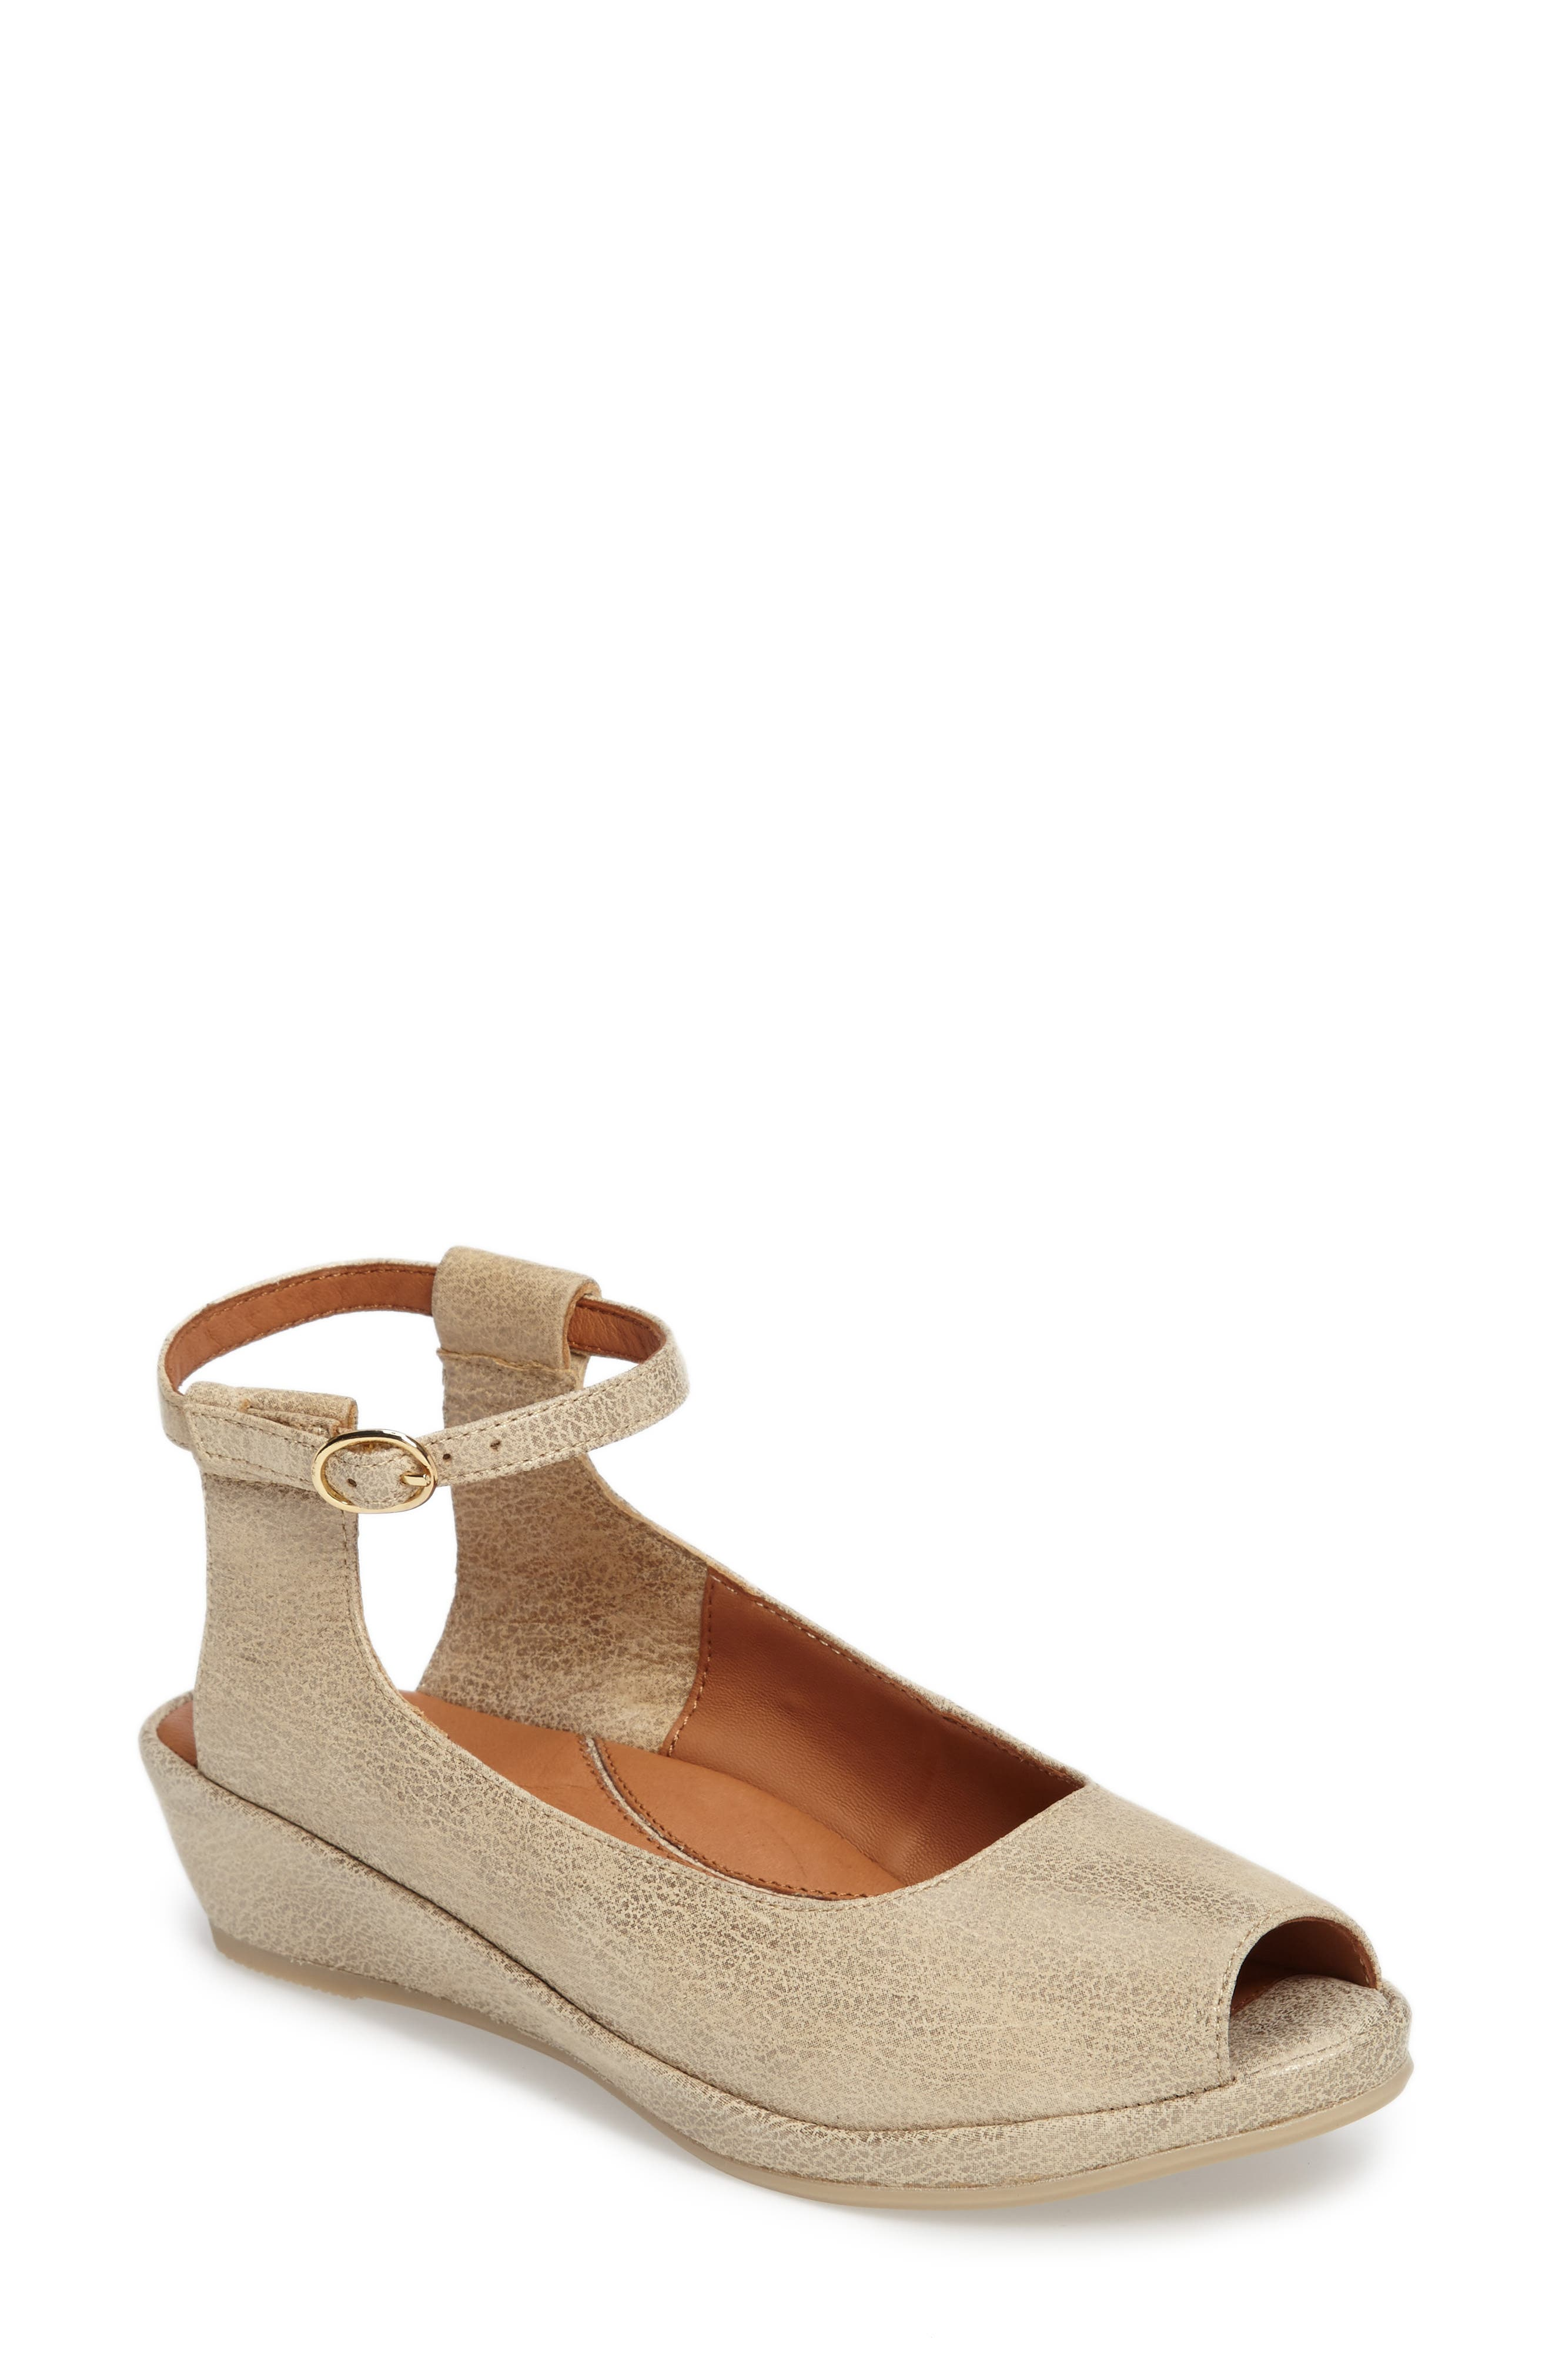 Burgogne Ankle Strap Flat,                             Main thumbnail 1, color,                             Gold Beige Leather